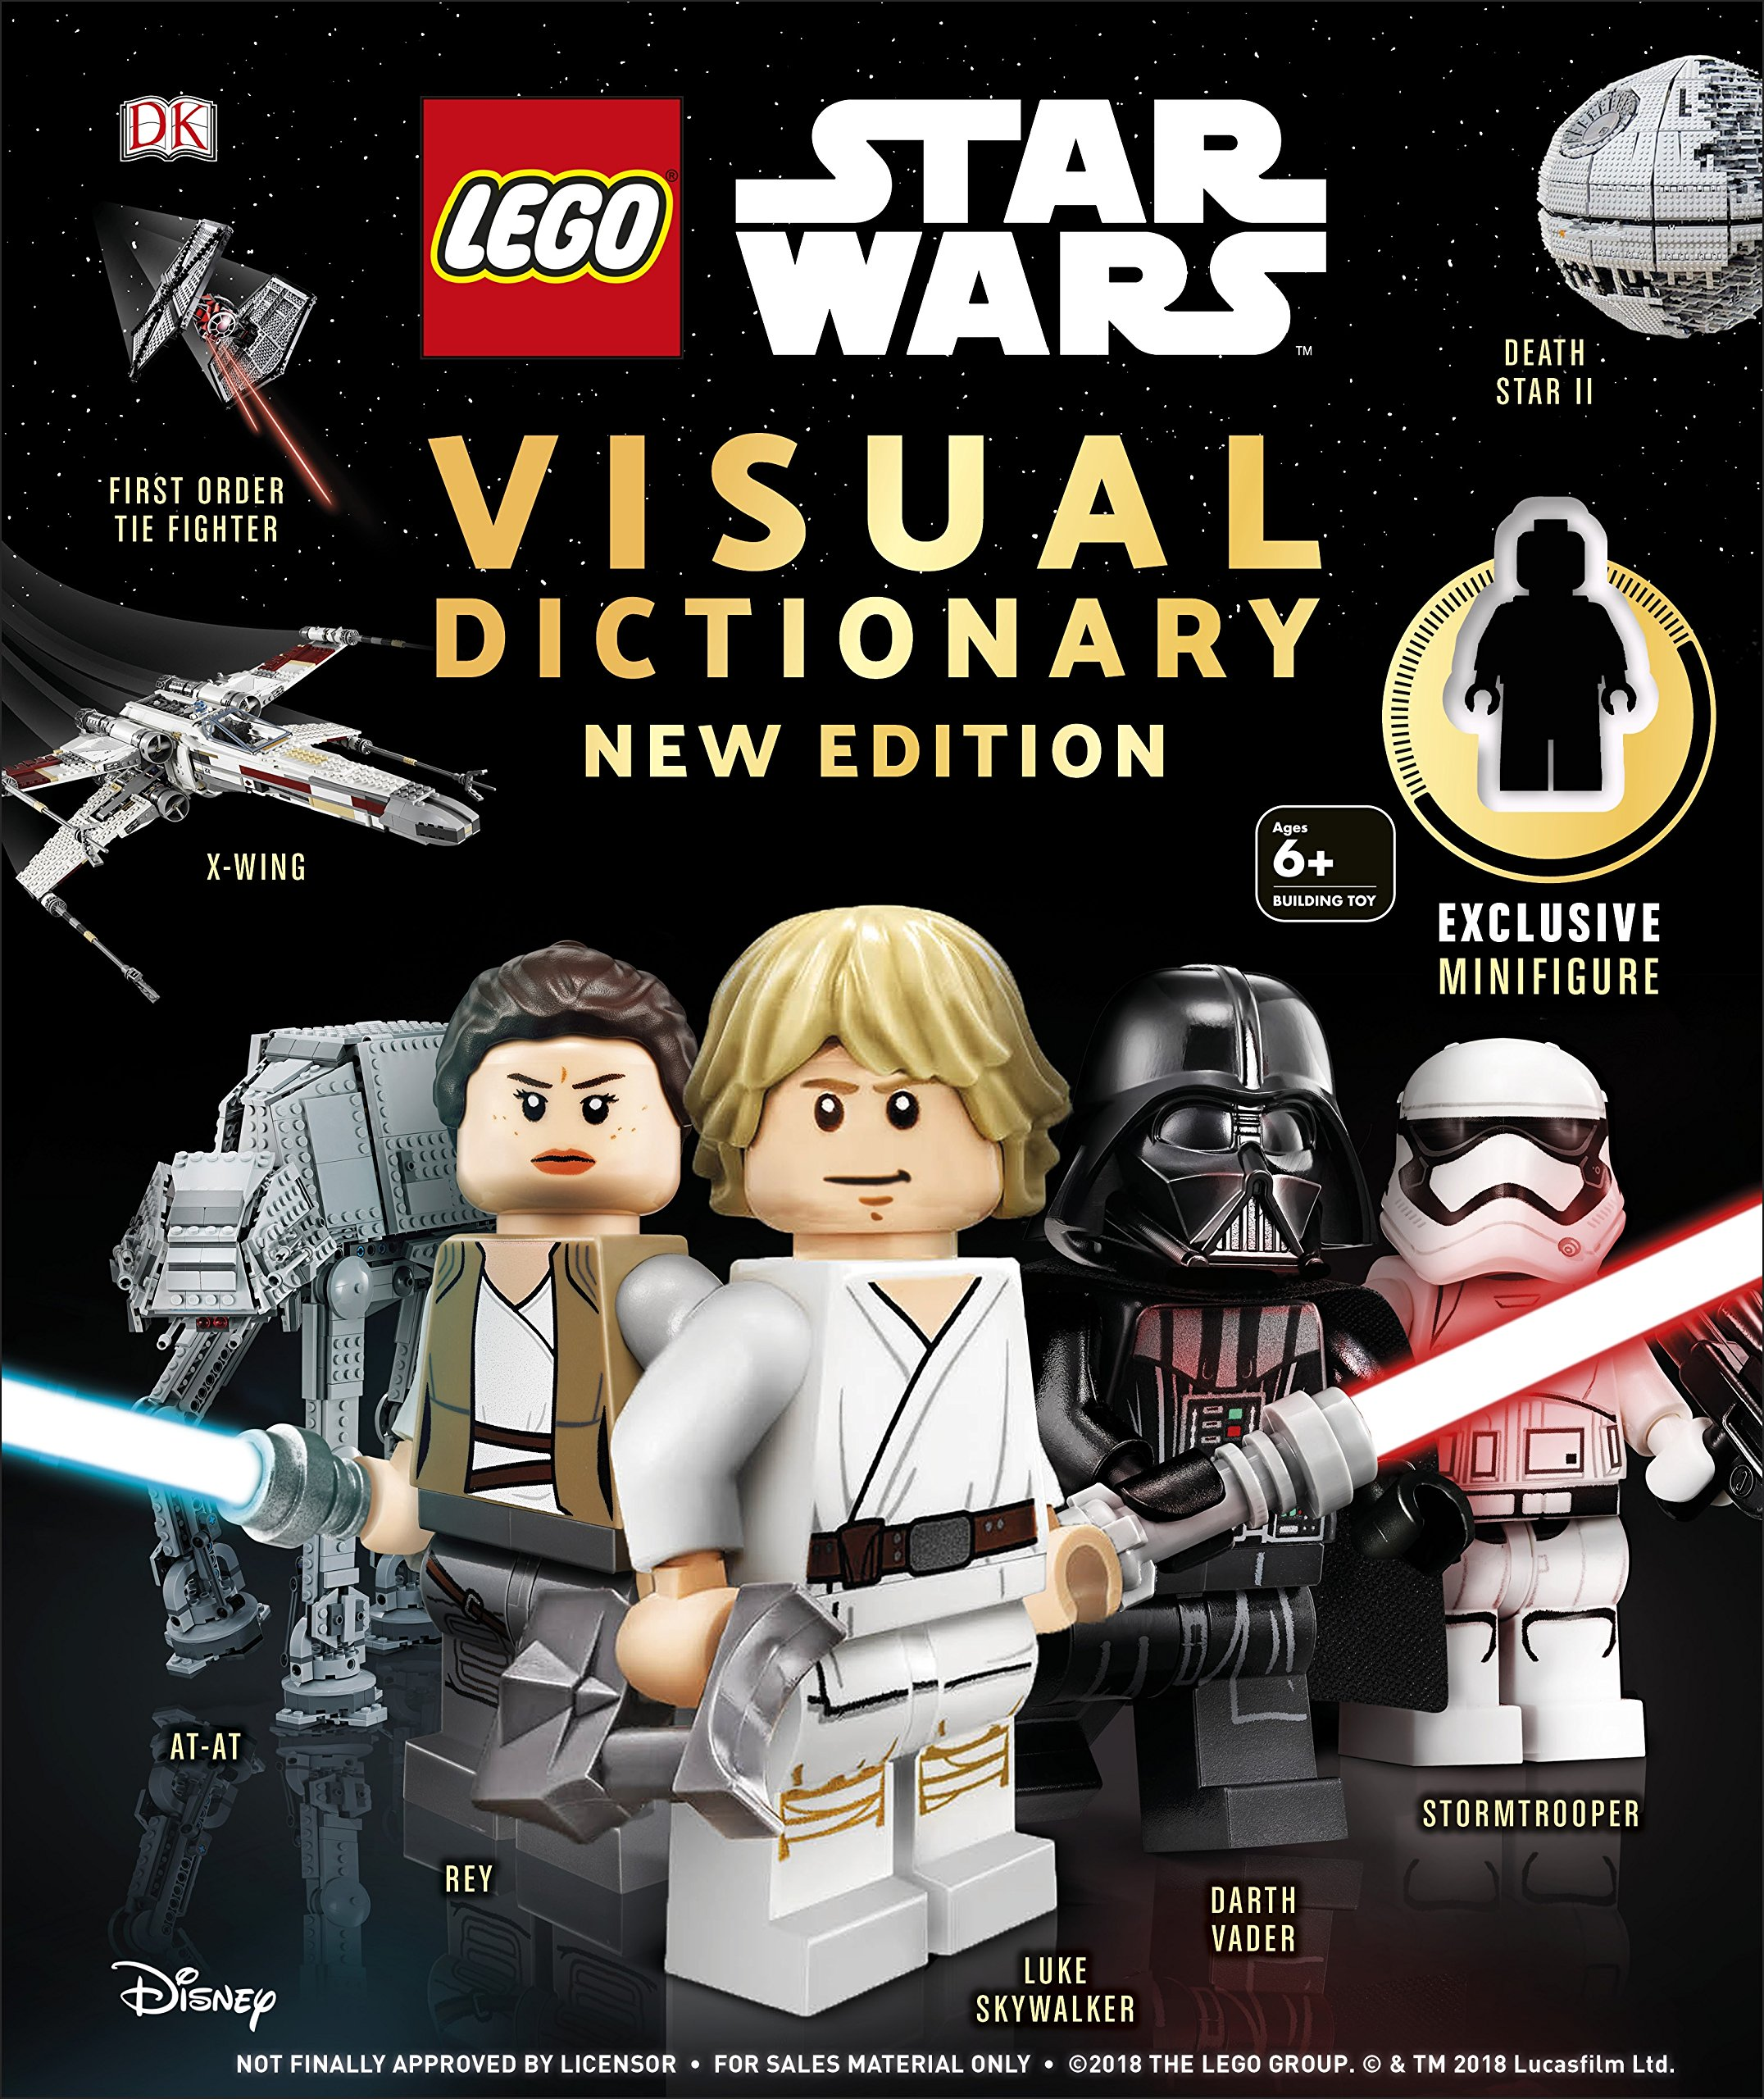 Lego Star Wars Visual Dictionary 2019 Edition Coming Soon